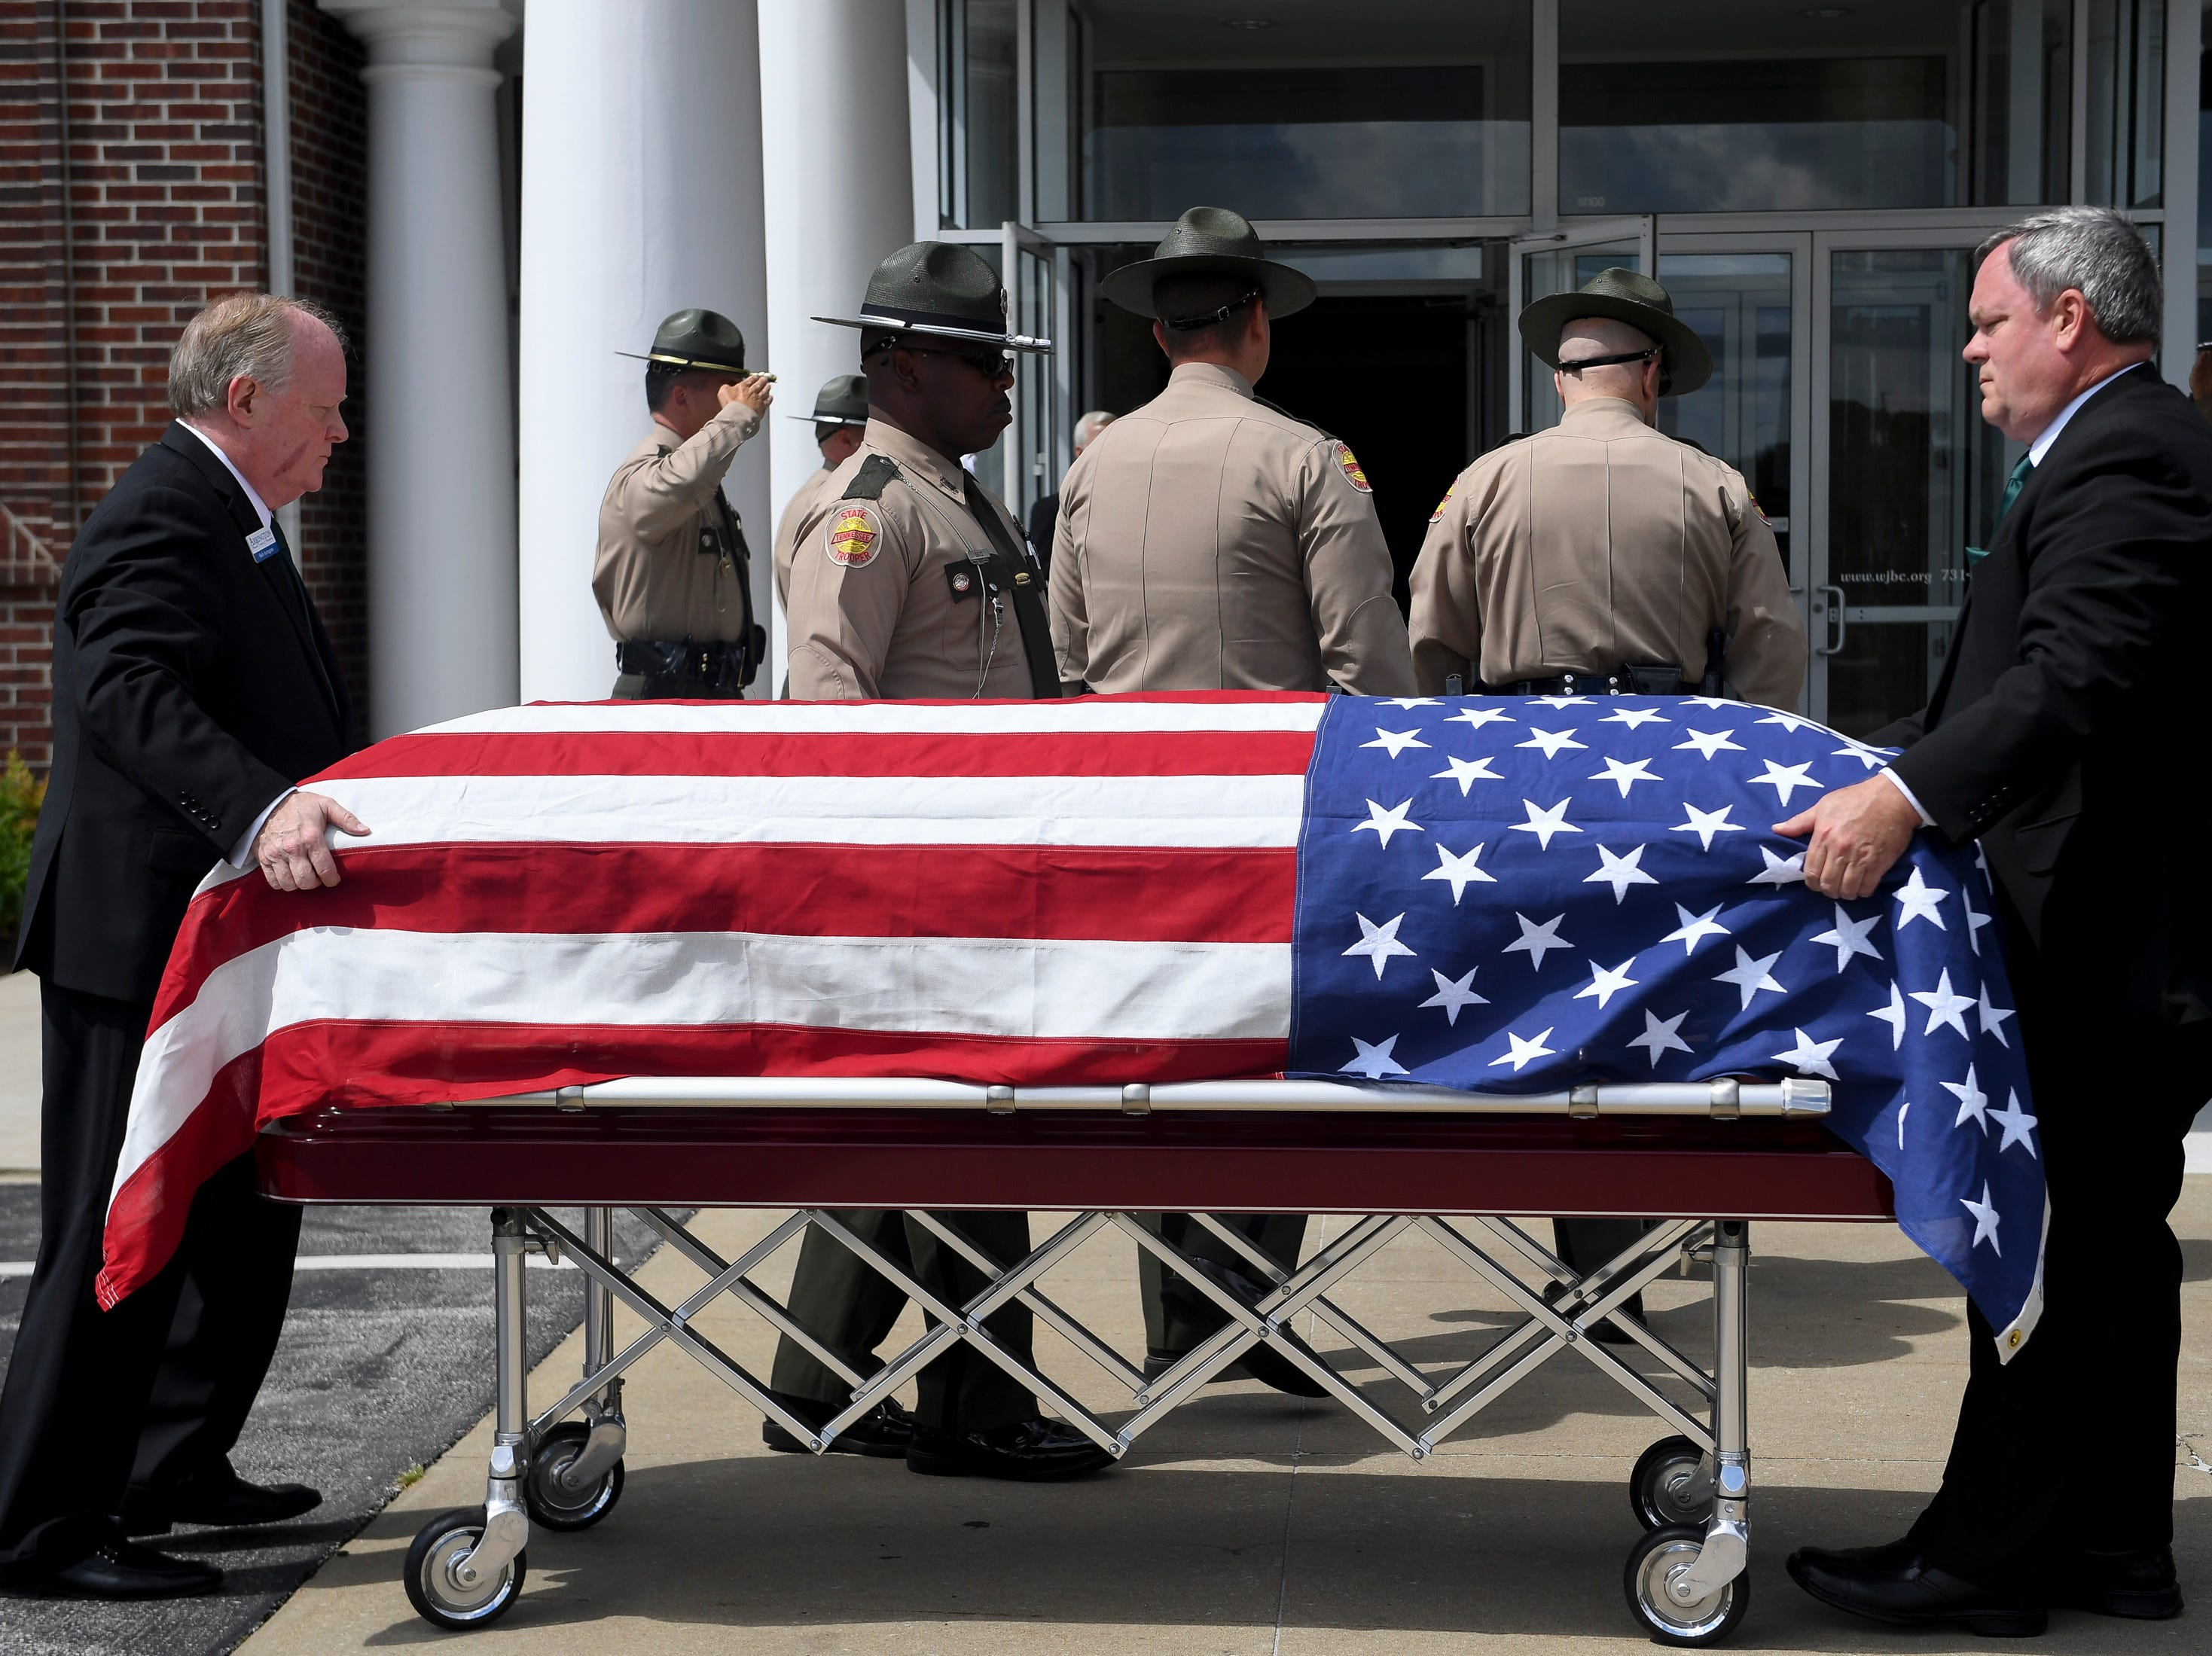 The casket is carried in before the funeral service for Tennessee State Trooper Matthew Gatti at West Jackson Baptist Church in Jackson, Tenn., Monday, May 13, 2019. Gatti died in the line of duty in an accident while responding to a car fire on I-40 in Madison County on May 6.